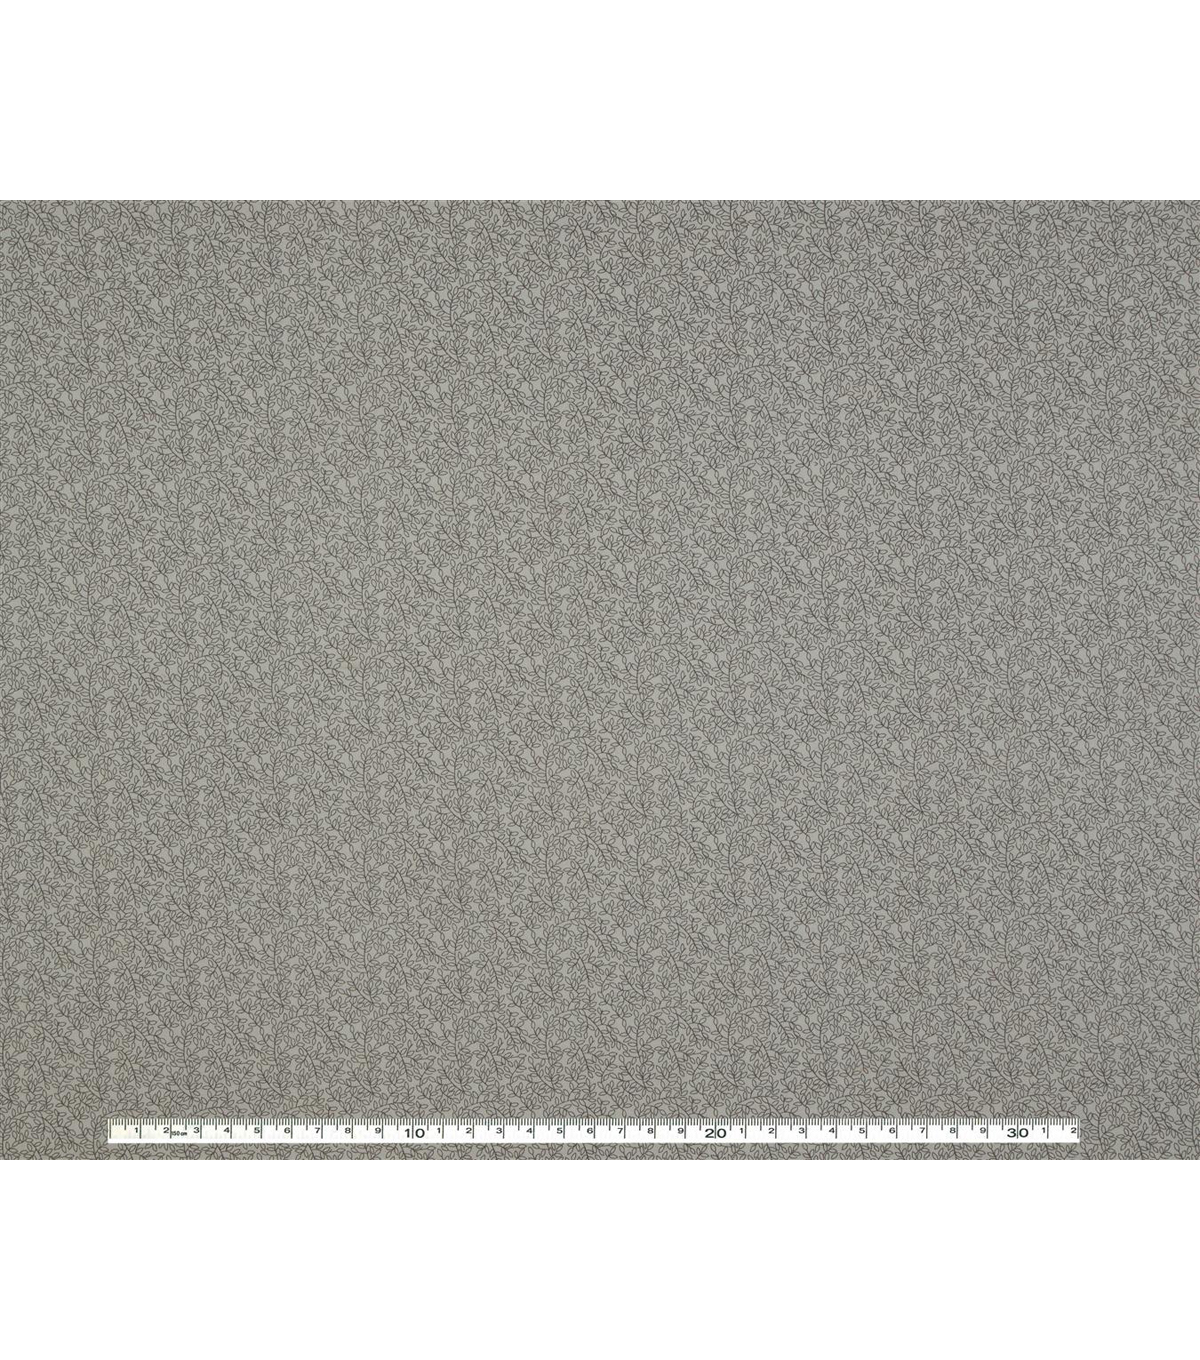 Wide Quilt Cotton Backing Fabric 108\u0022-Gray Vine